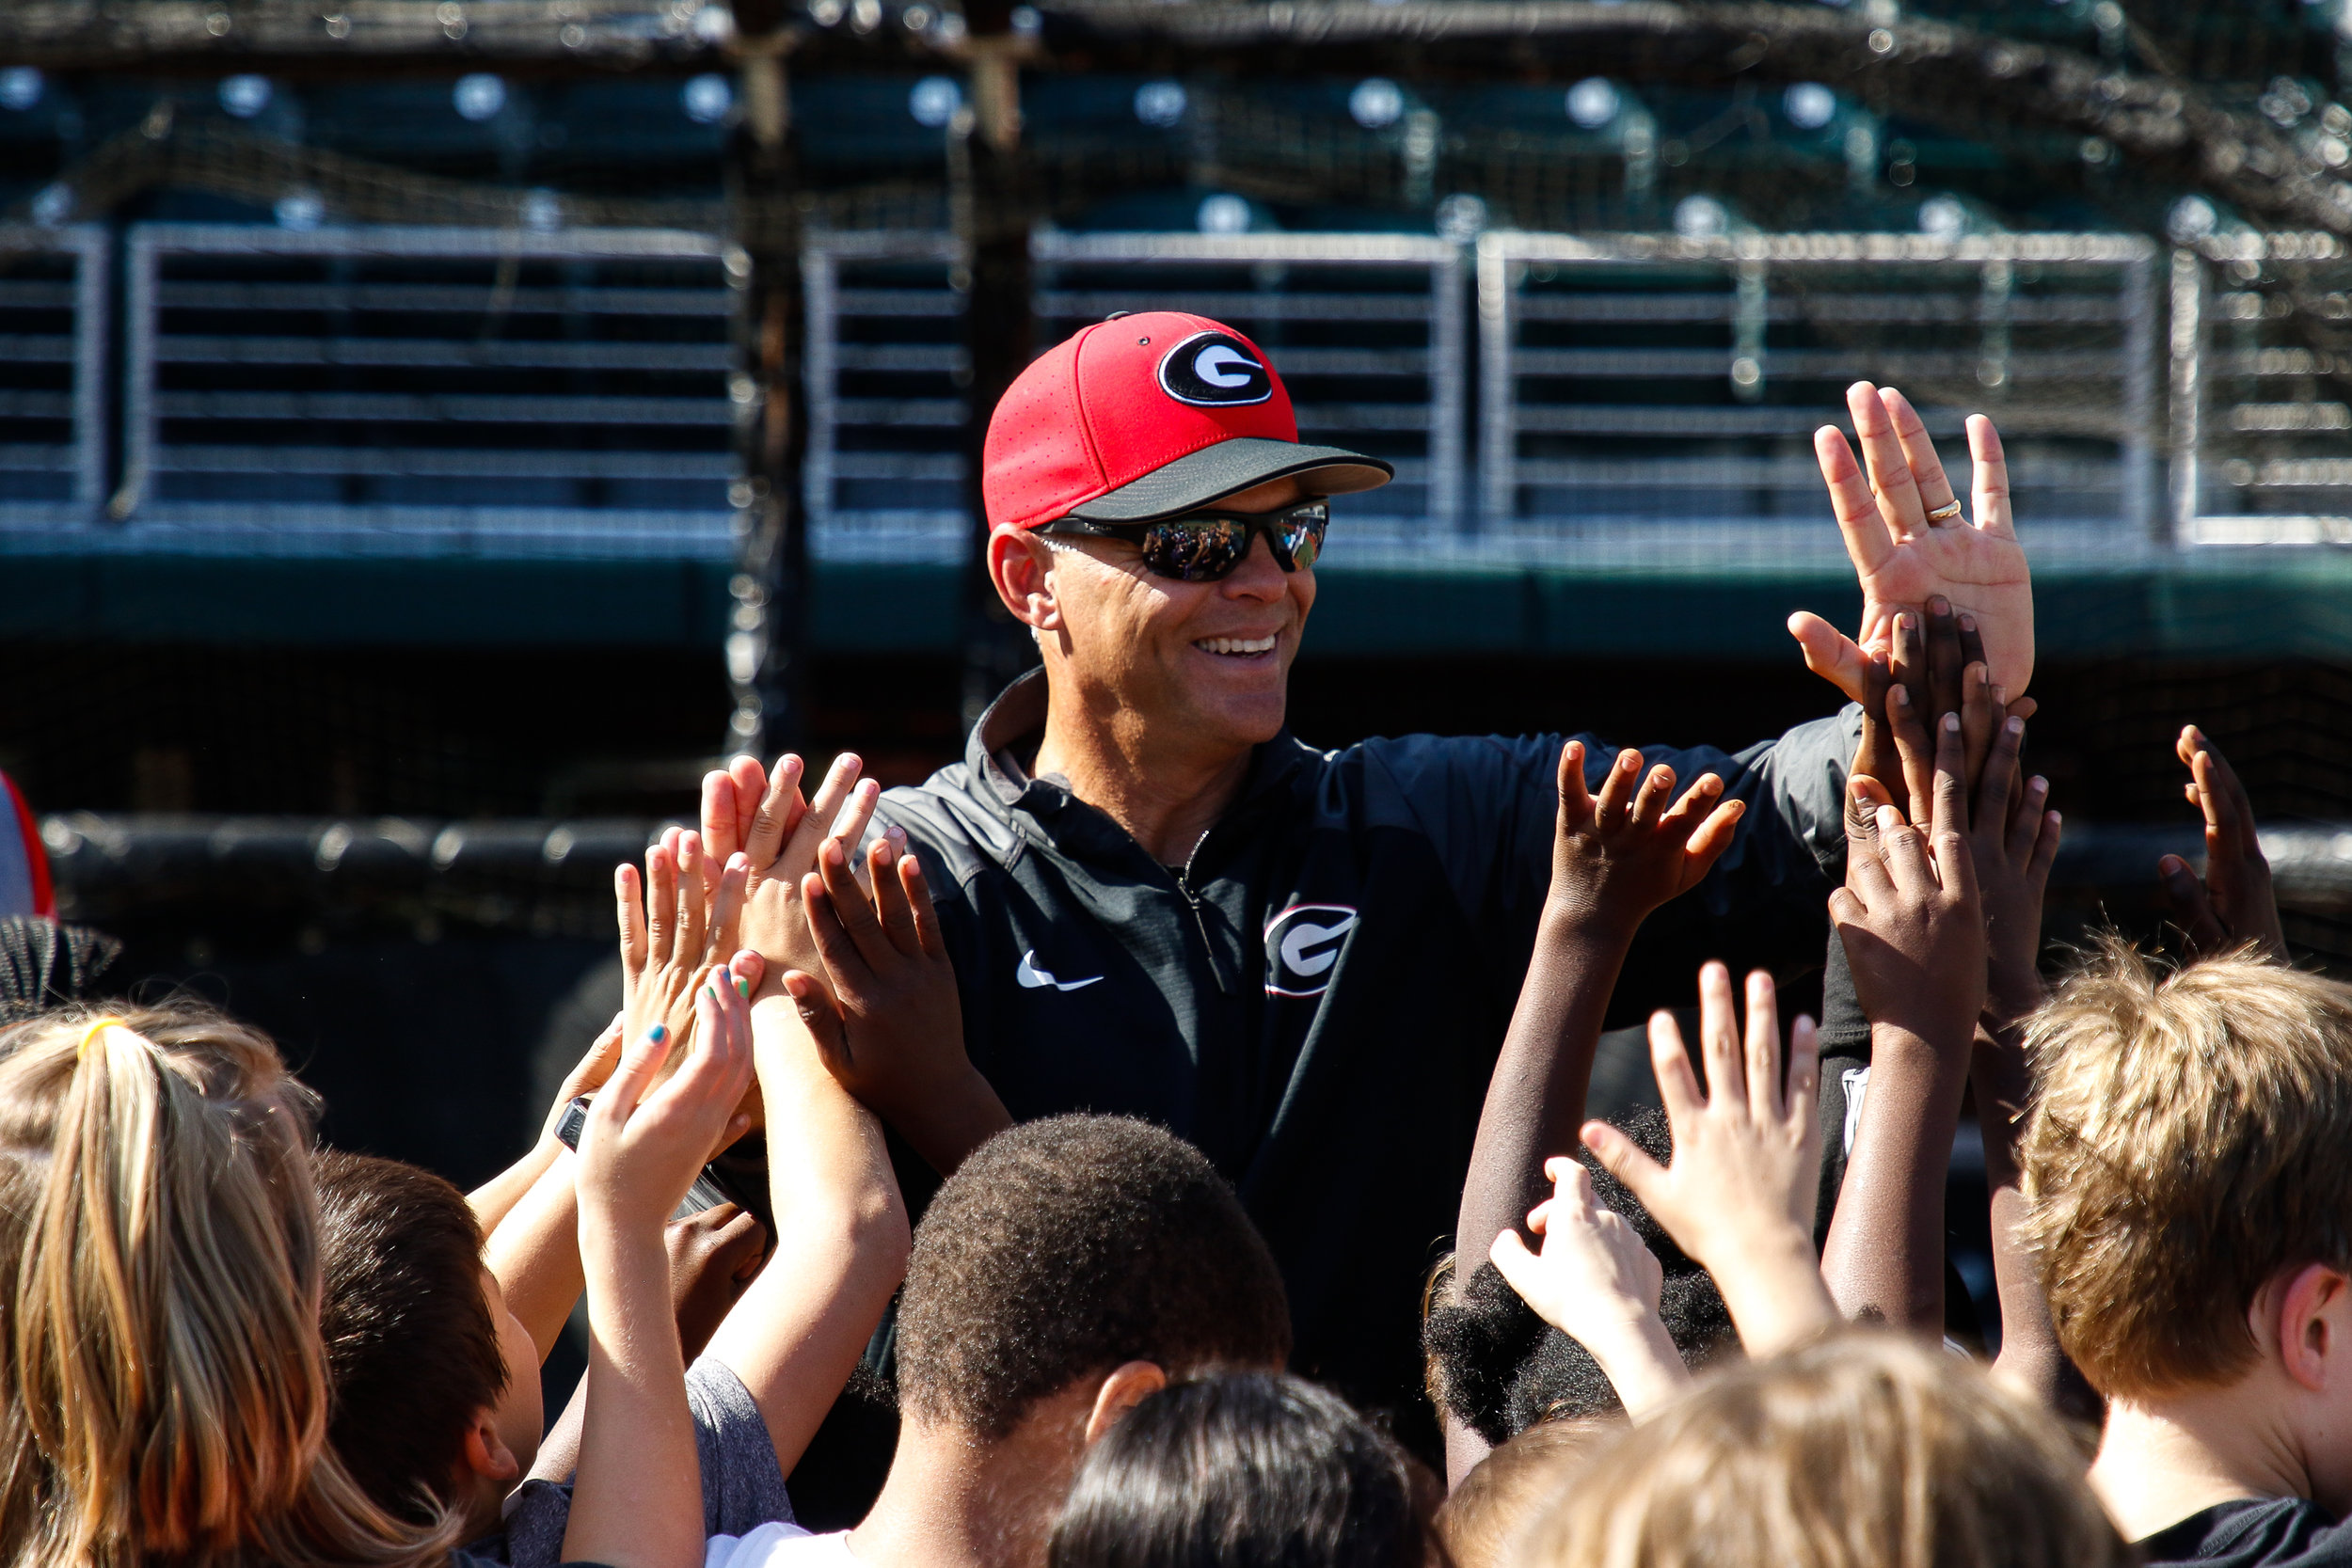 Georgia head coach Scott Stricklin high fives Barrow Elementary School students as the Georgia Baseball Halloween Practice comes to an end at Foley Field on Wednesday, October 31, 2018.